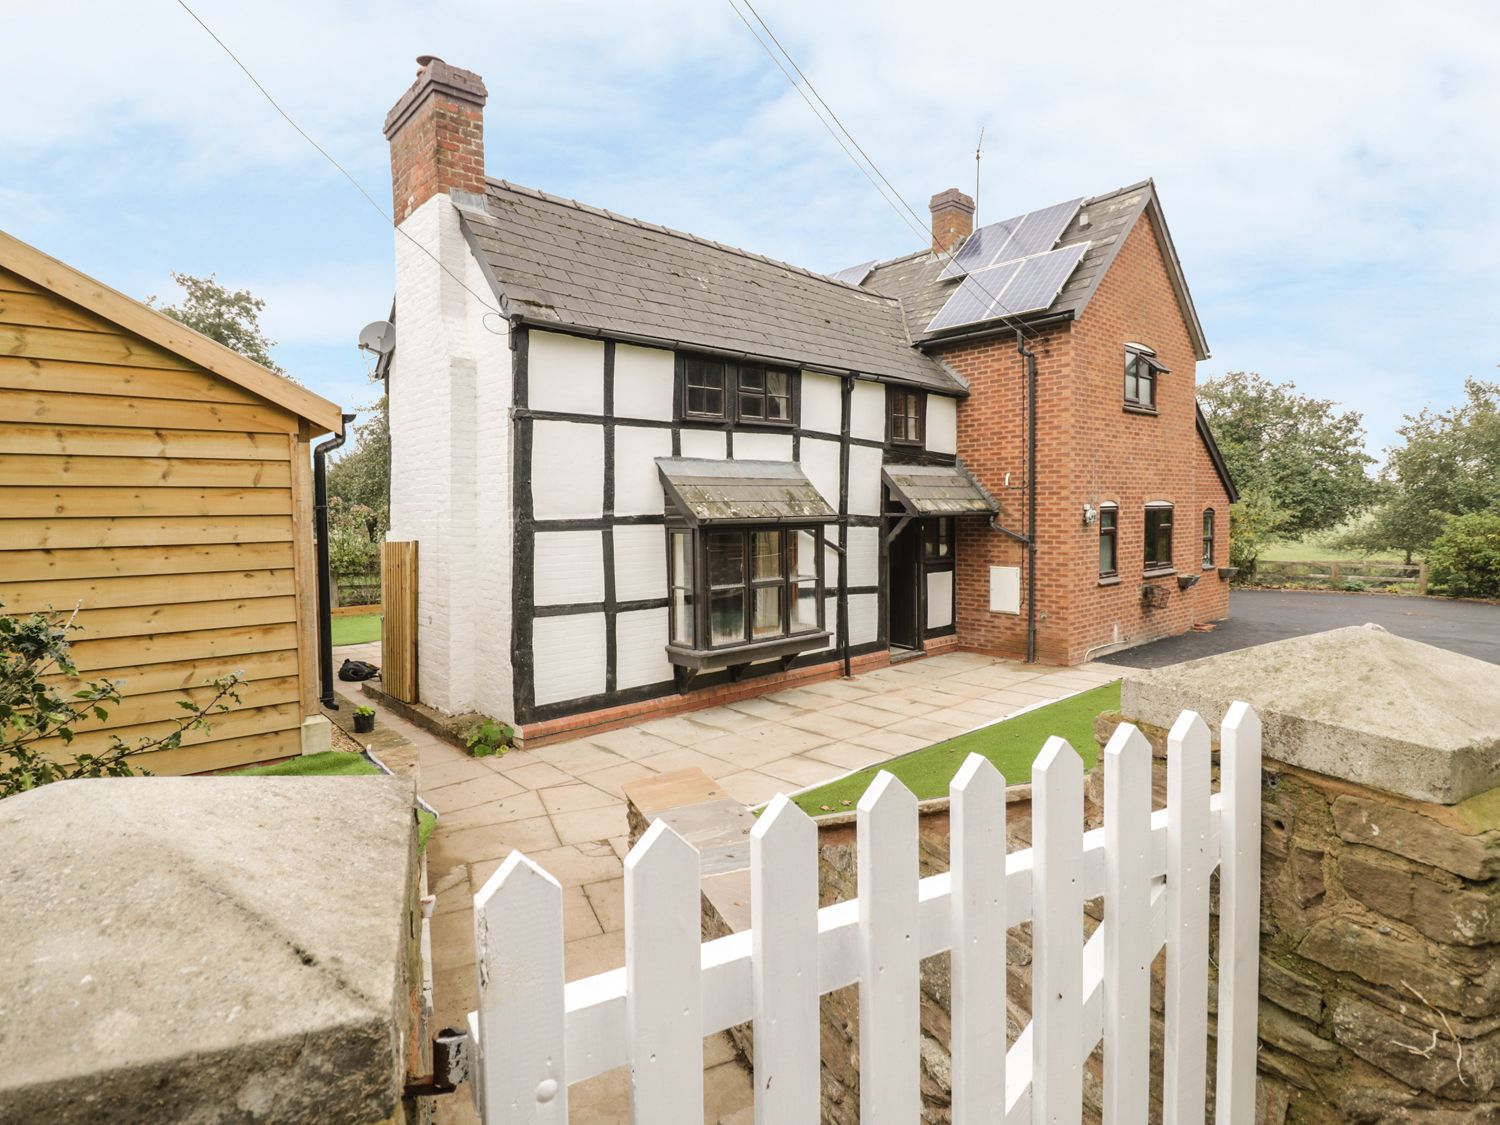 Orchard View - Herefordshire - 942060 - photo 1